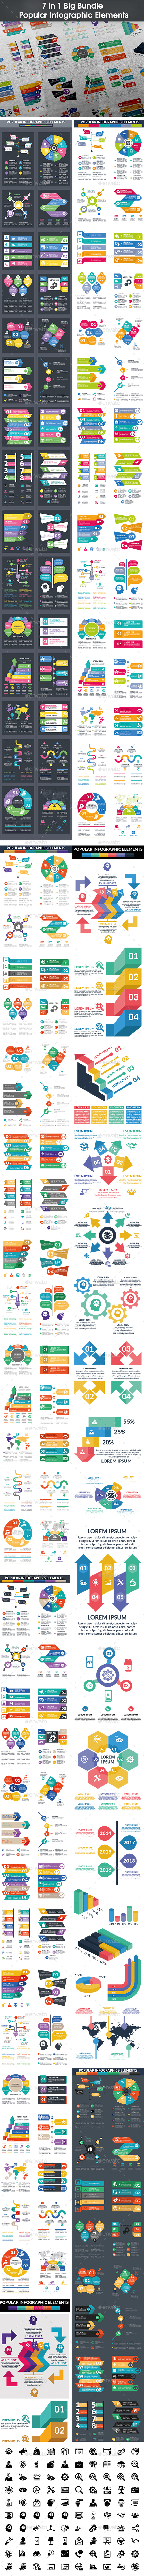 GraphicRiver 7 in 1 Big Bundle Popular Infographic 20529005